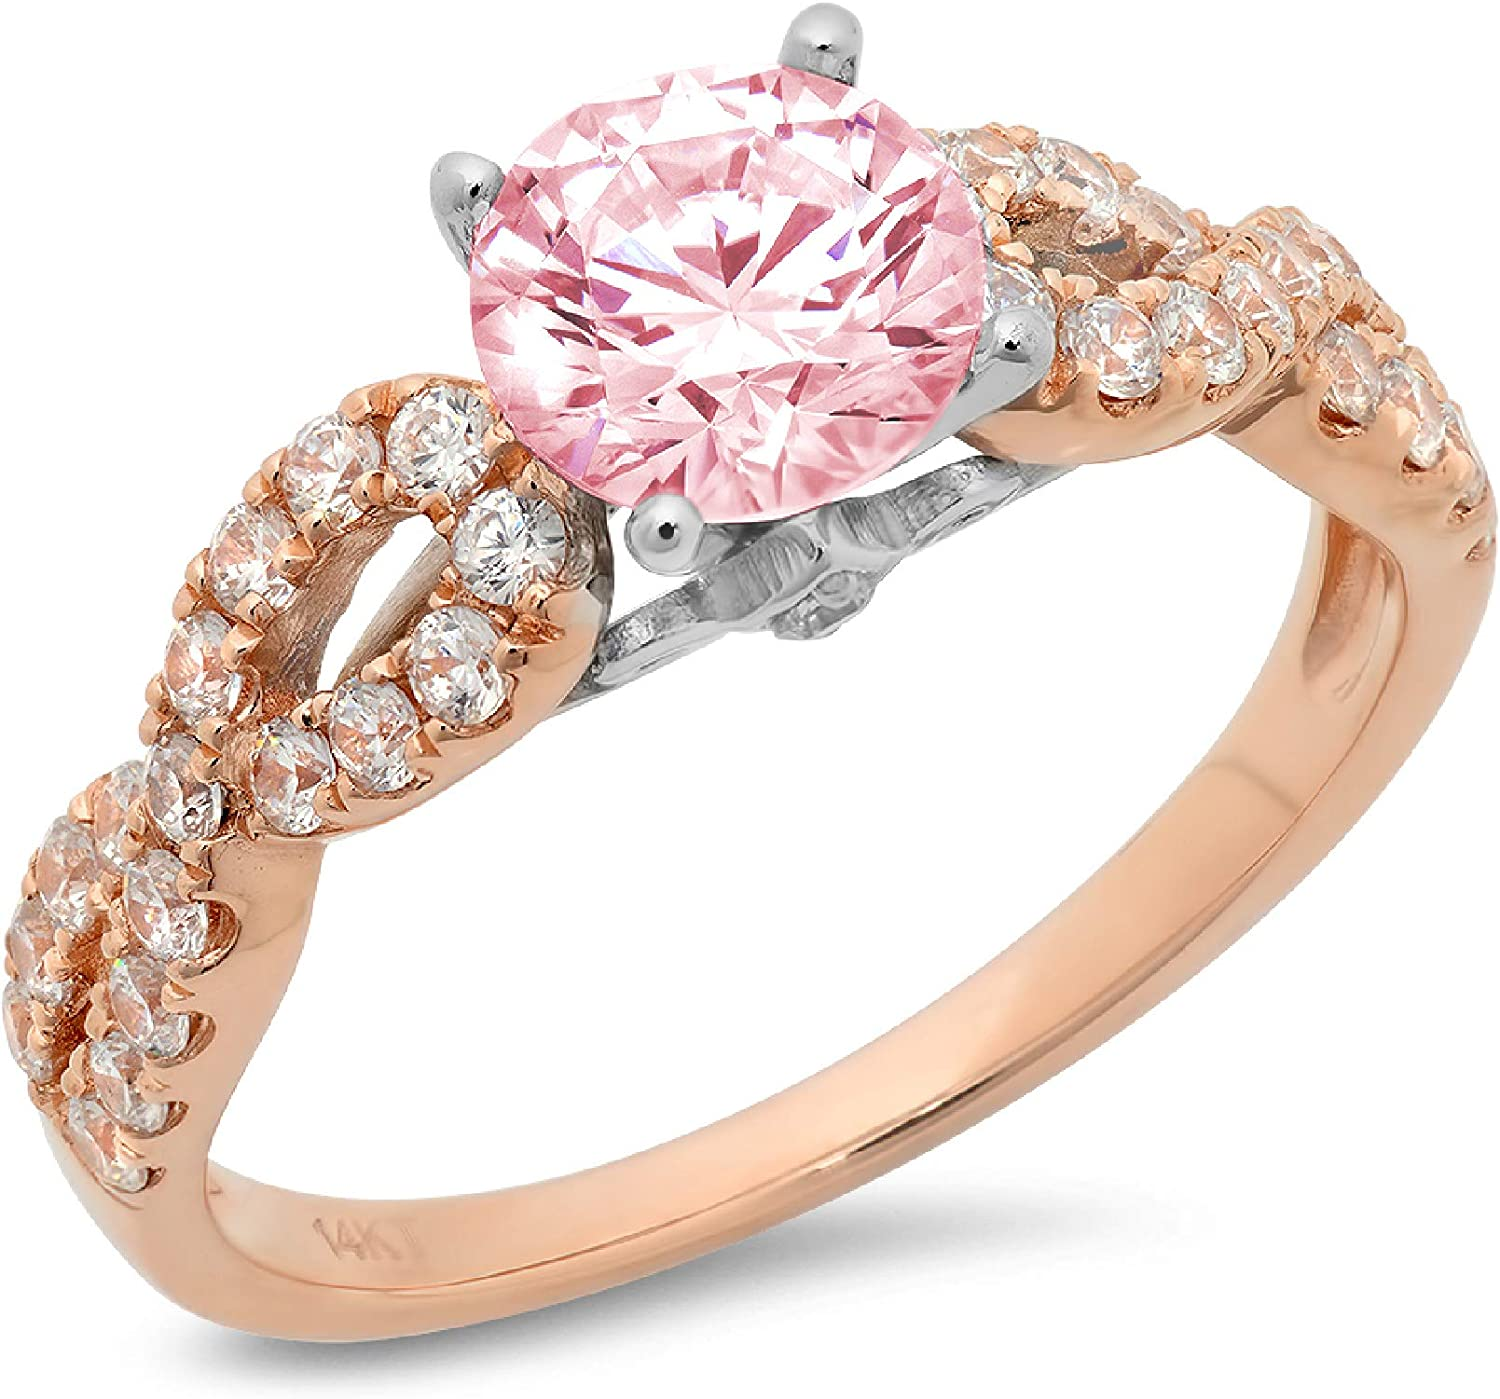 1.29ct Brilliant Round Cut Solitaire Ideal Simulated Popular popular D VVS1 Free Shipping Cheap Bargain Gift Pink